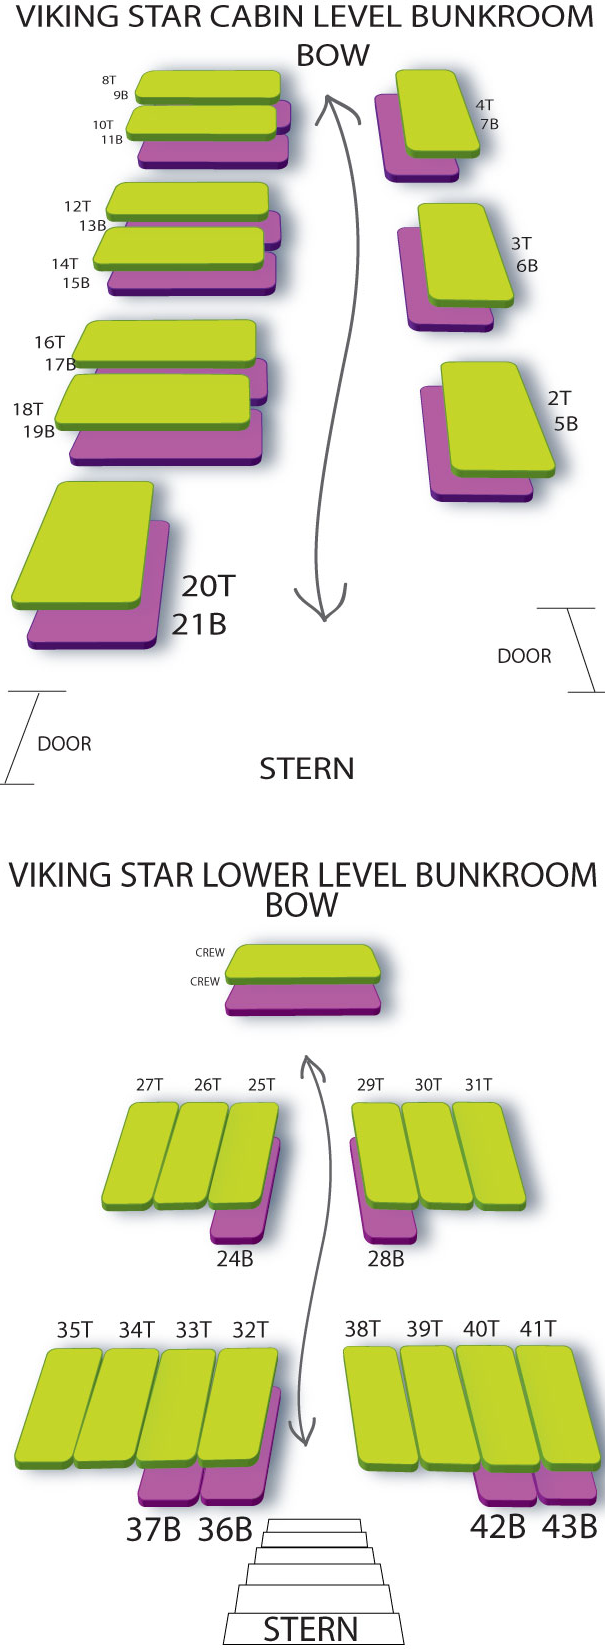 Click here to Star Bunk Layout